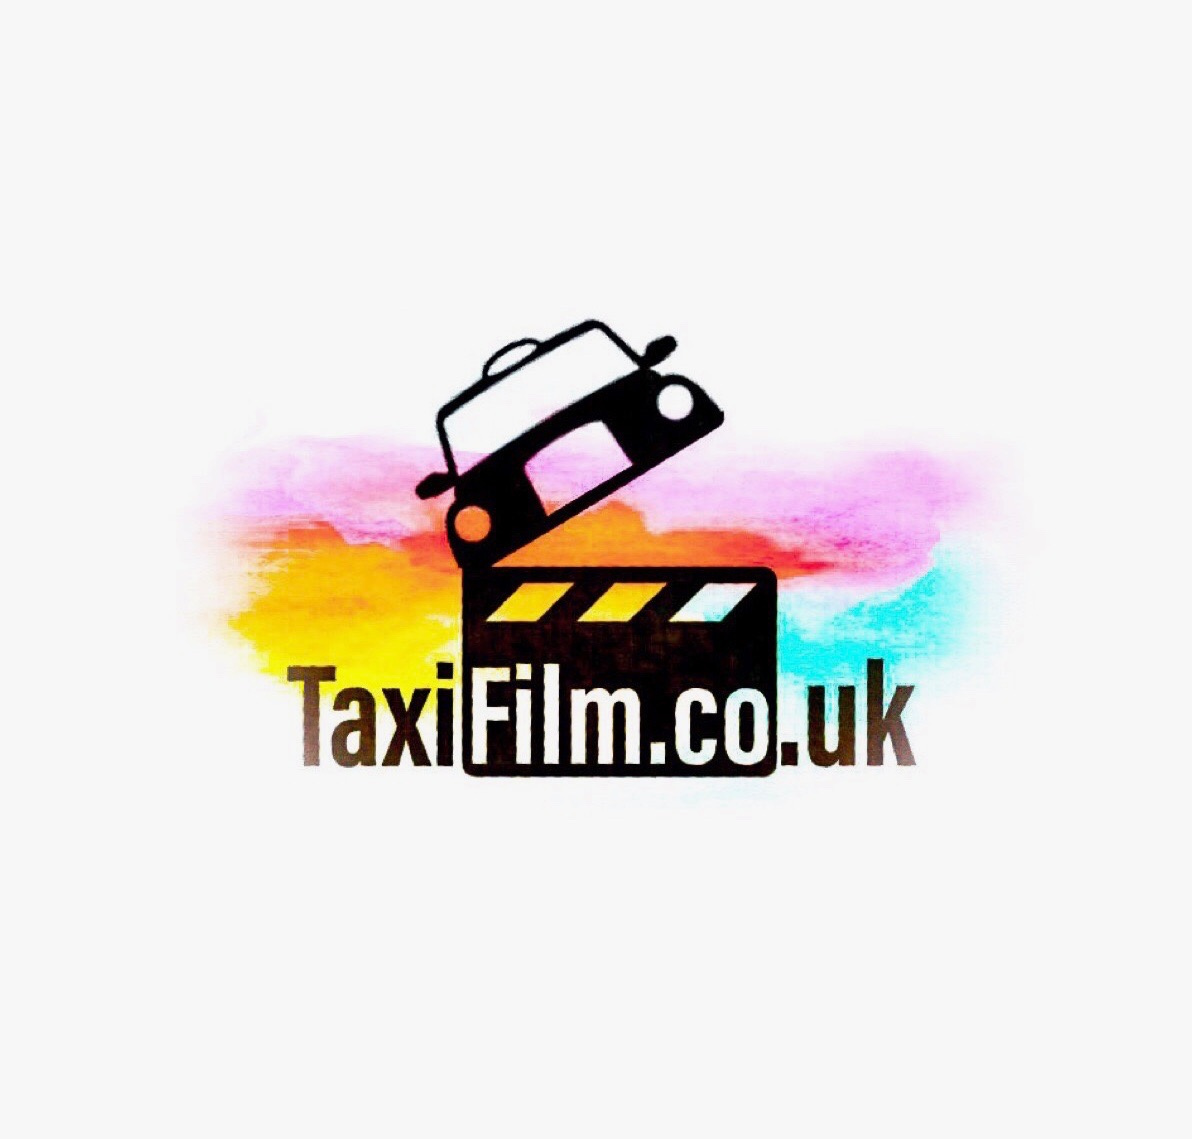 TaxiFilm.co.uk Logo